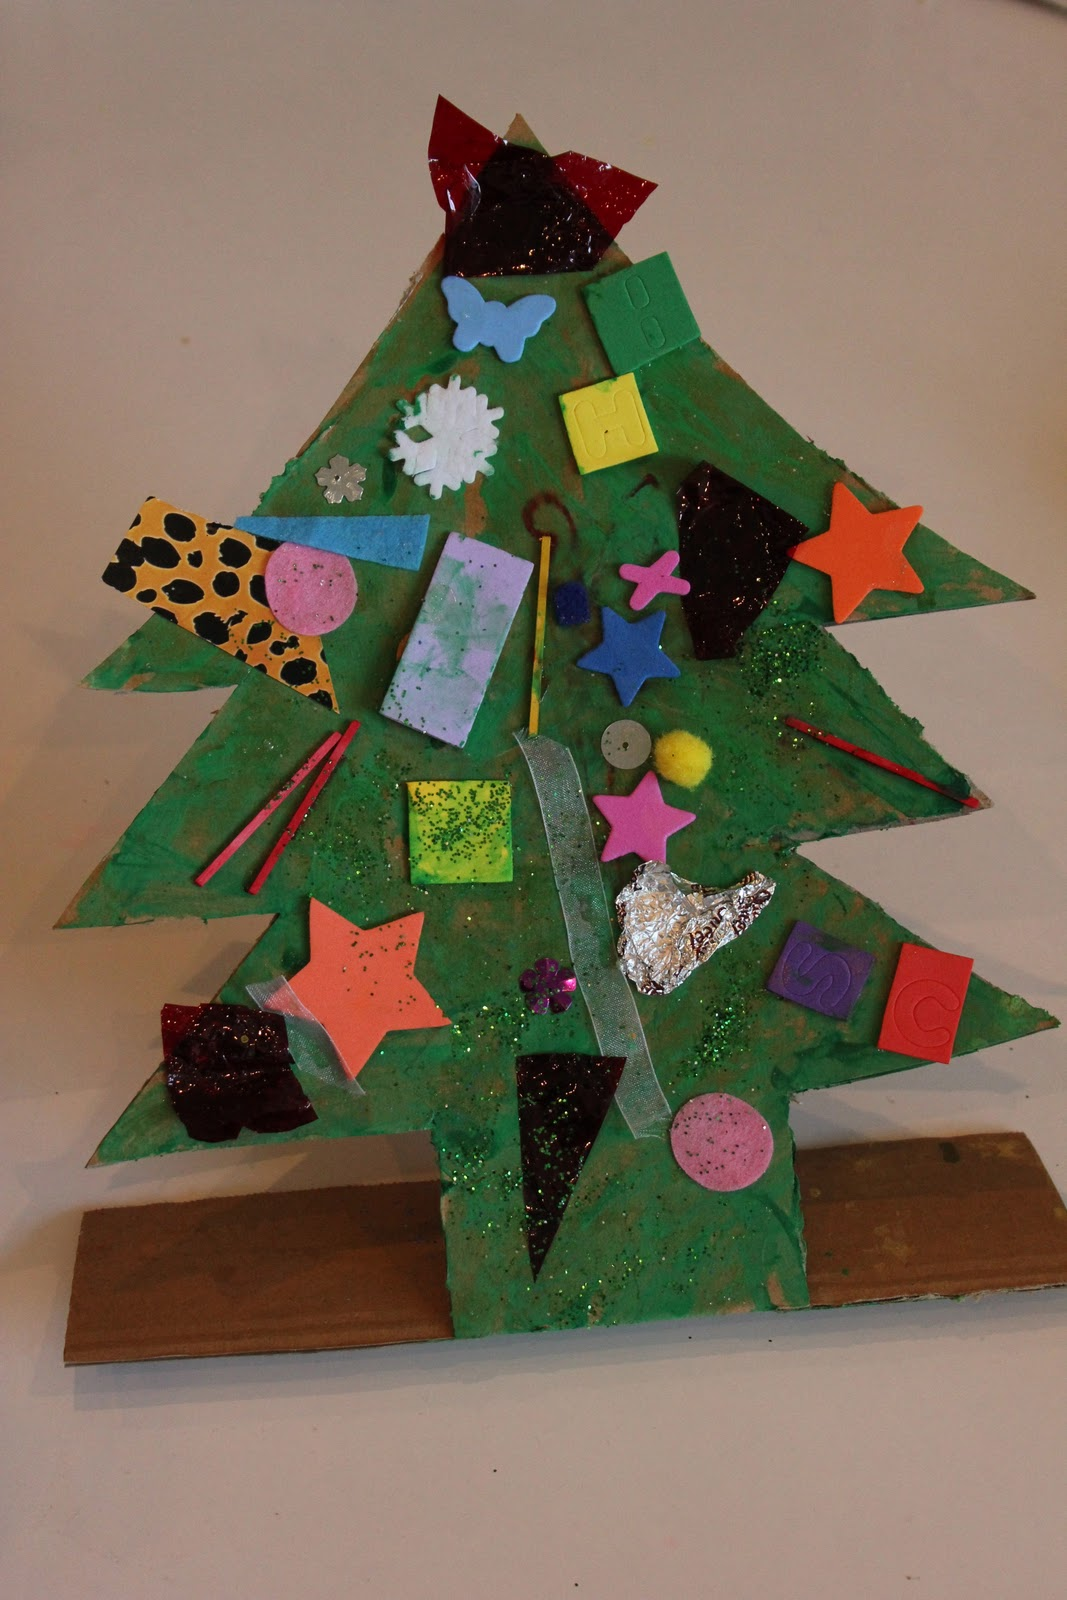 Christmas Decor Made From Recycled Materials : Christmas tree decorations using recycled materials